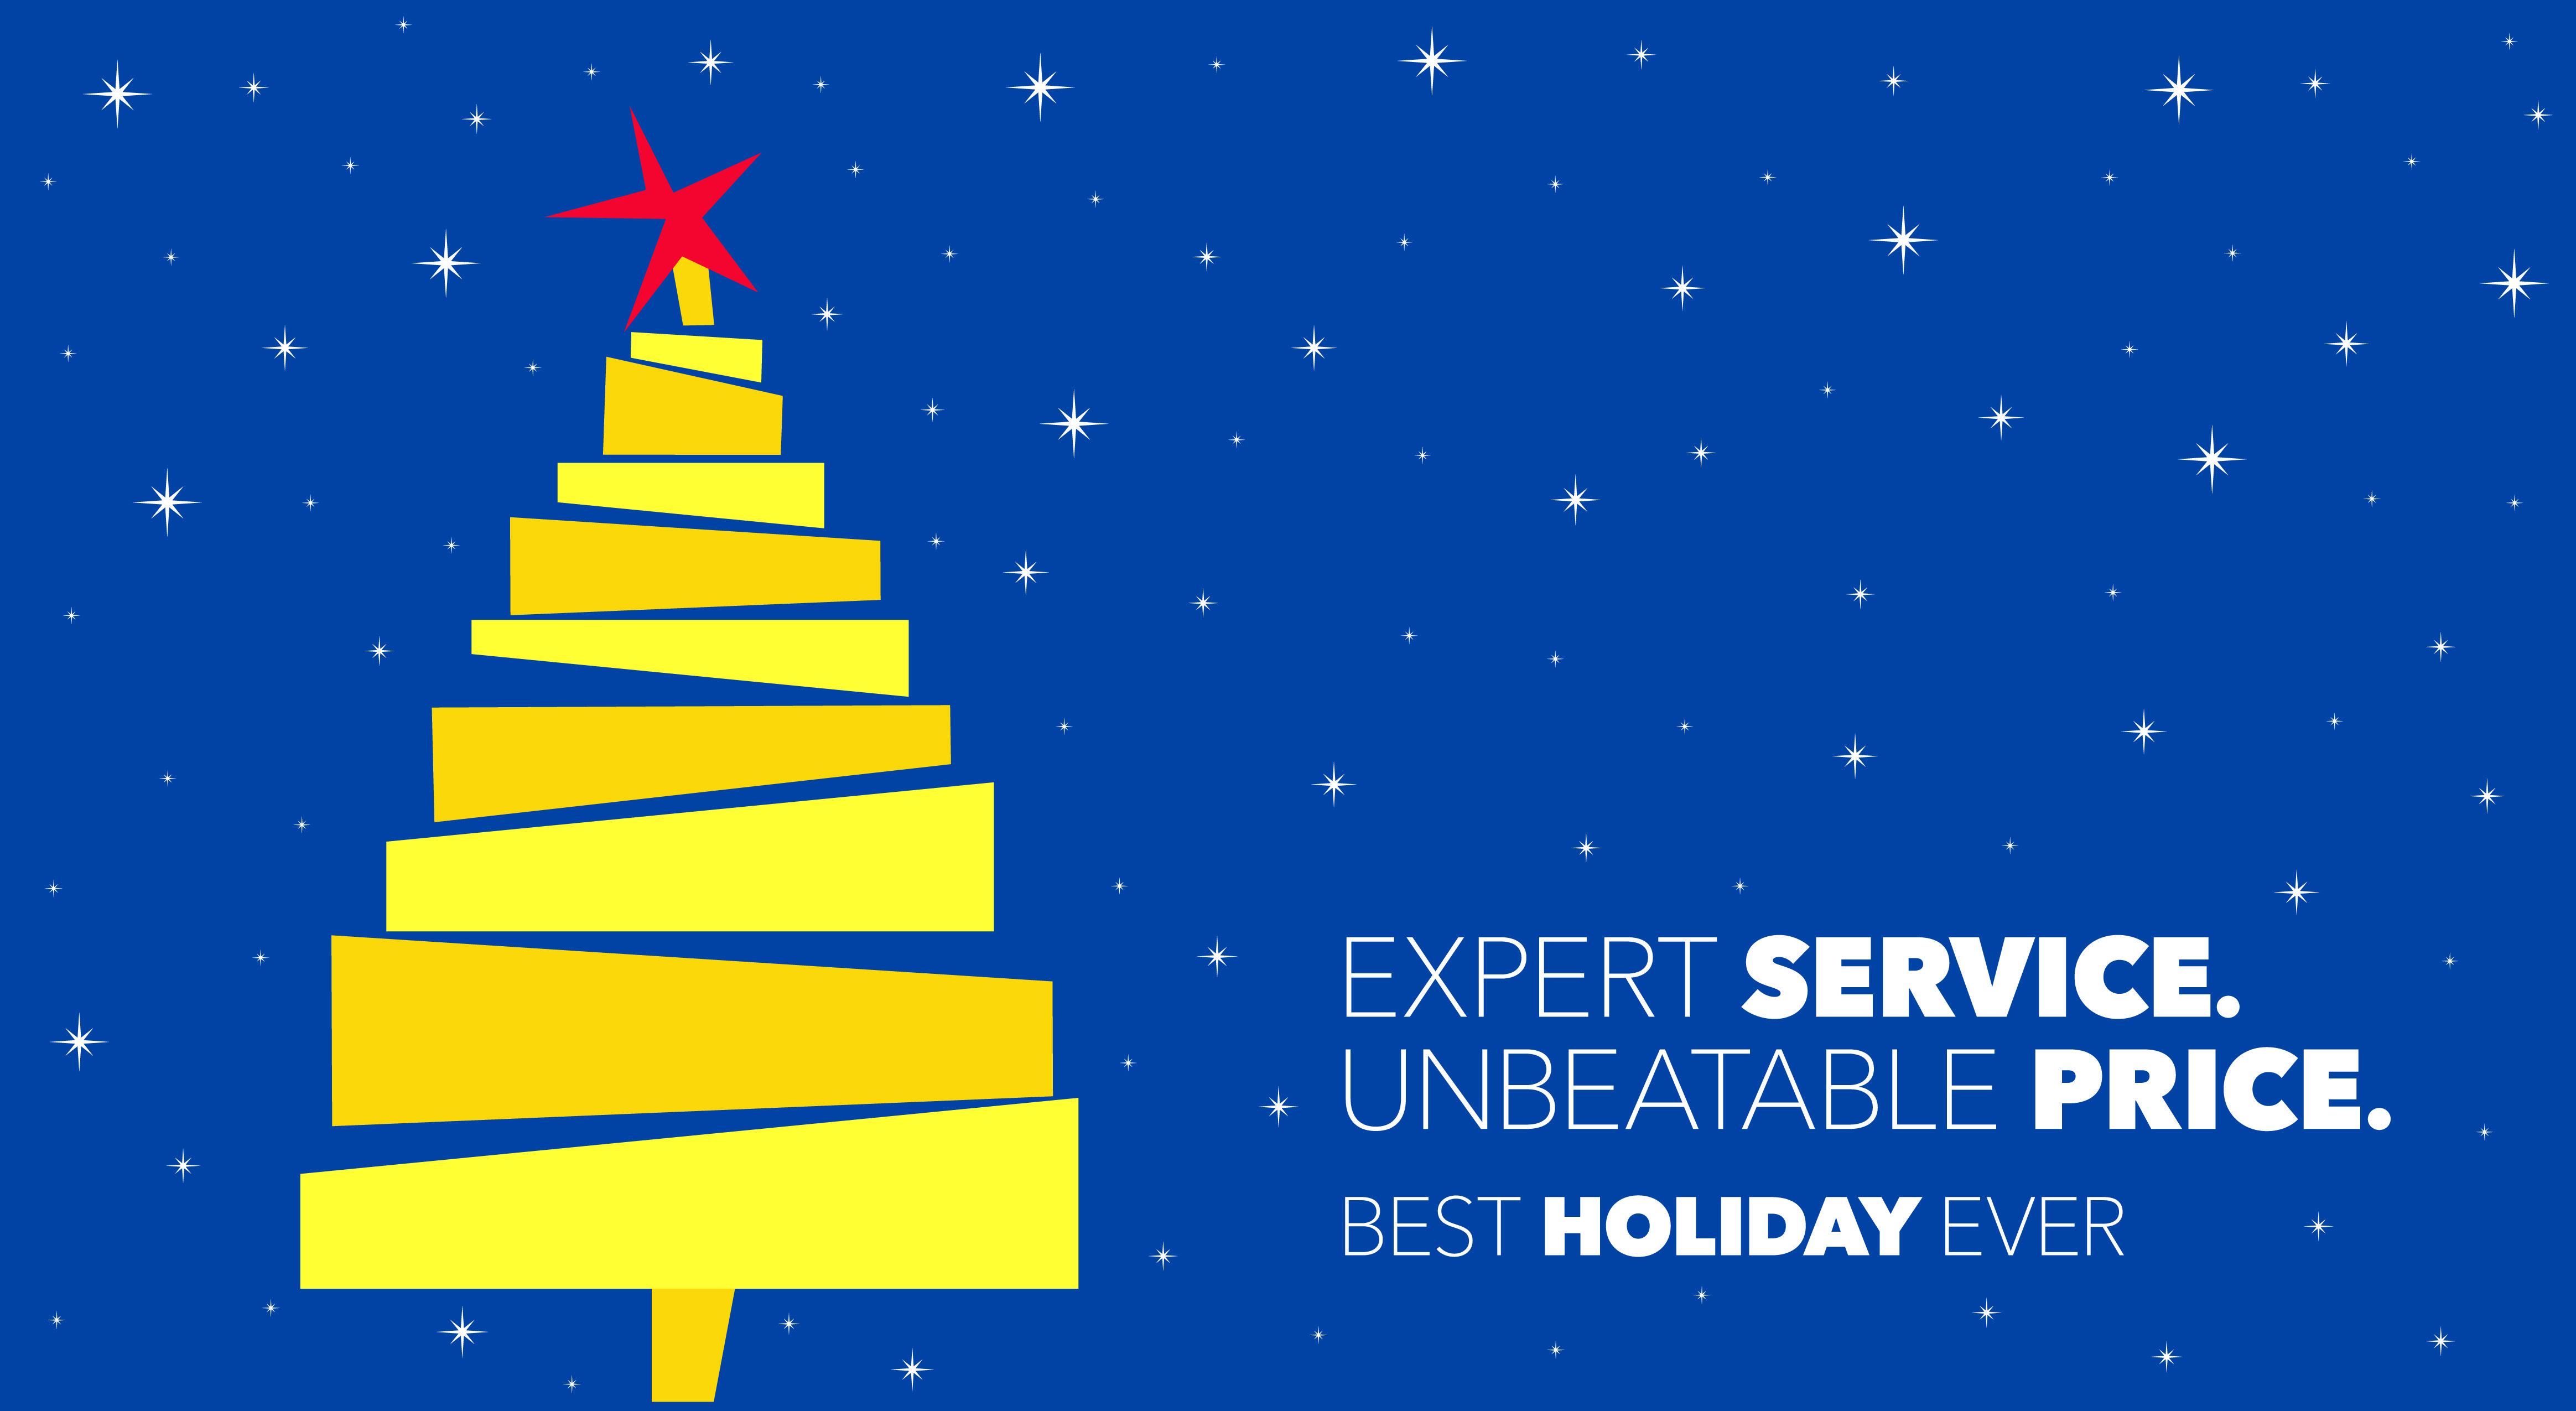 Best Buy Has Such Fun Items For Christmas Hintingseason Oledatbestbuy Bestbuy Cool Things To Buy Holiday Tech Gifts Best Family Gifts